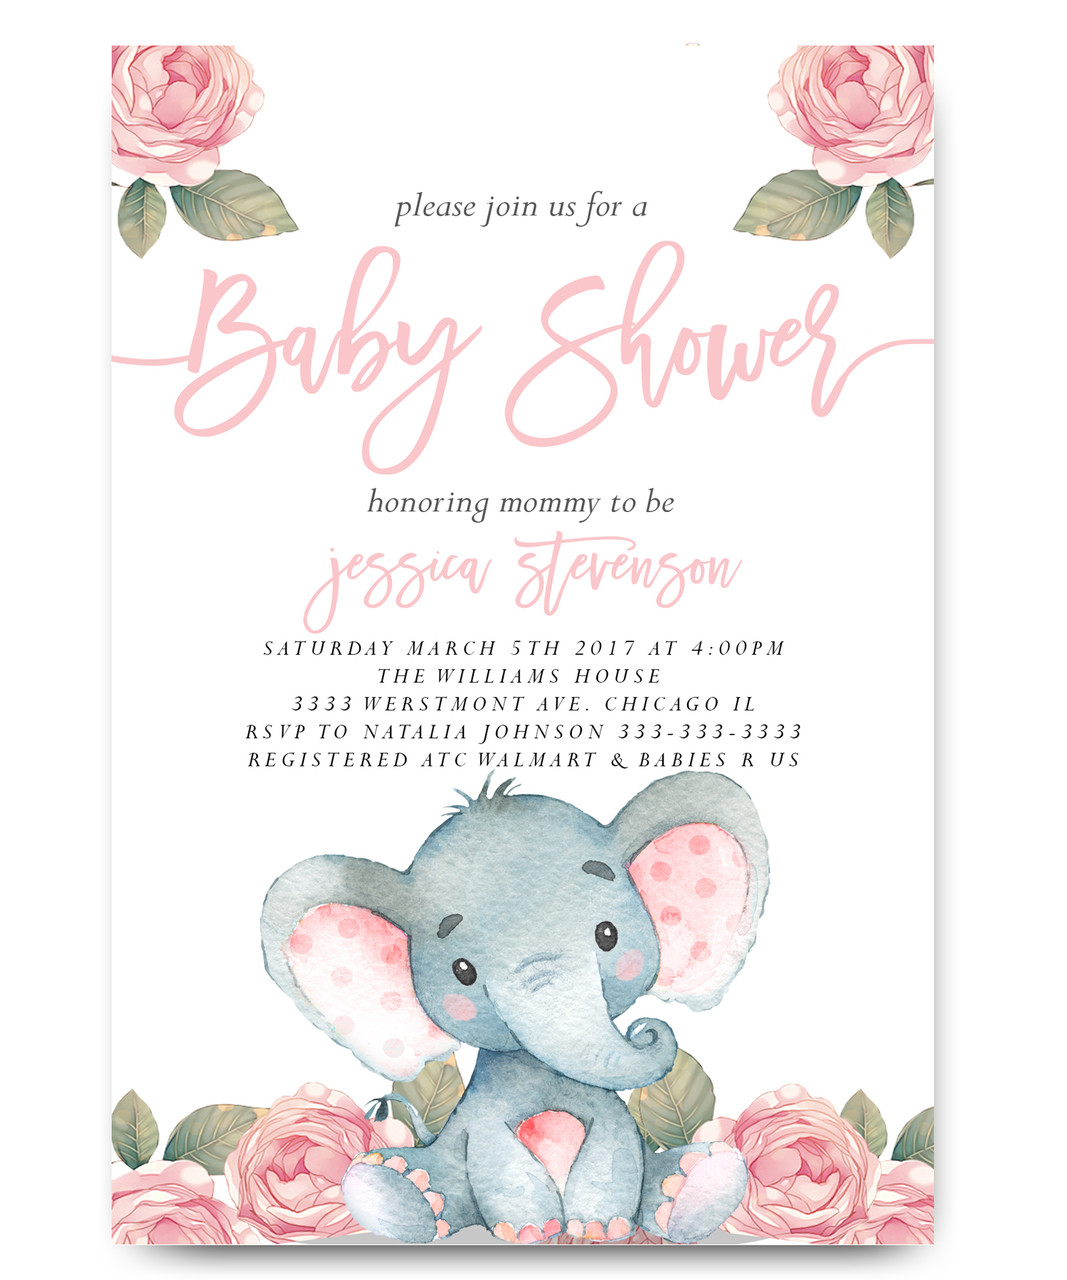 Staggering Elephant Baby Shower Vintage Elephant Elephant Baby Shower Watercolor Flowers Elephant Baby Shower Invitations Free Elephant Baby Shower Invitations Online invitations Elephant Baby Shower Invitations